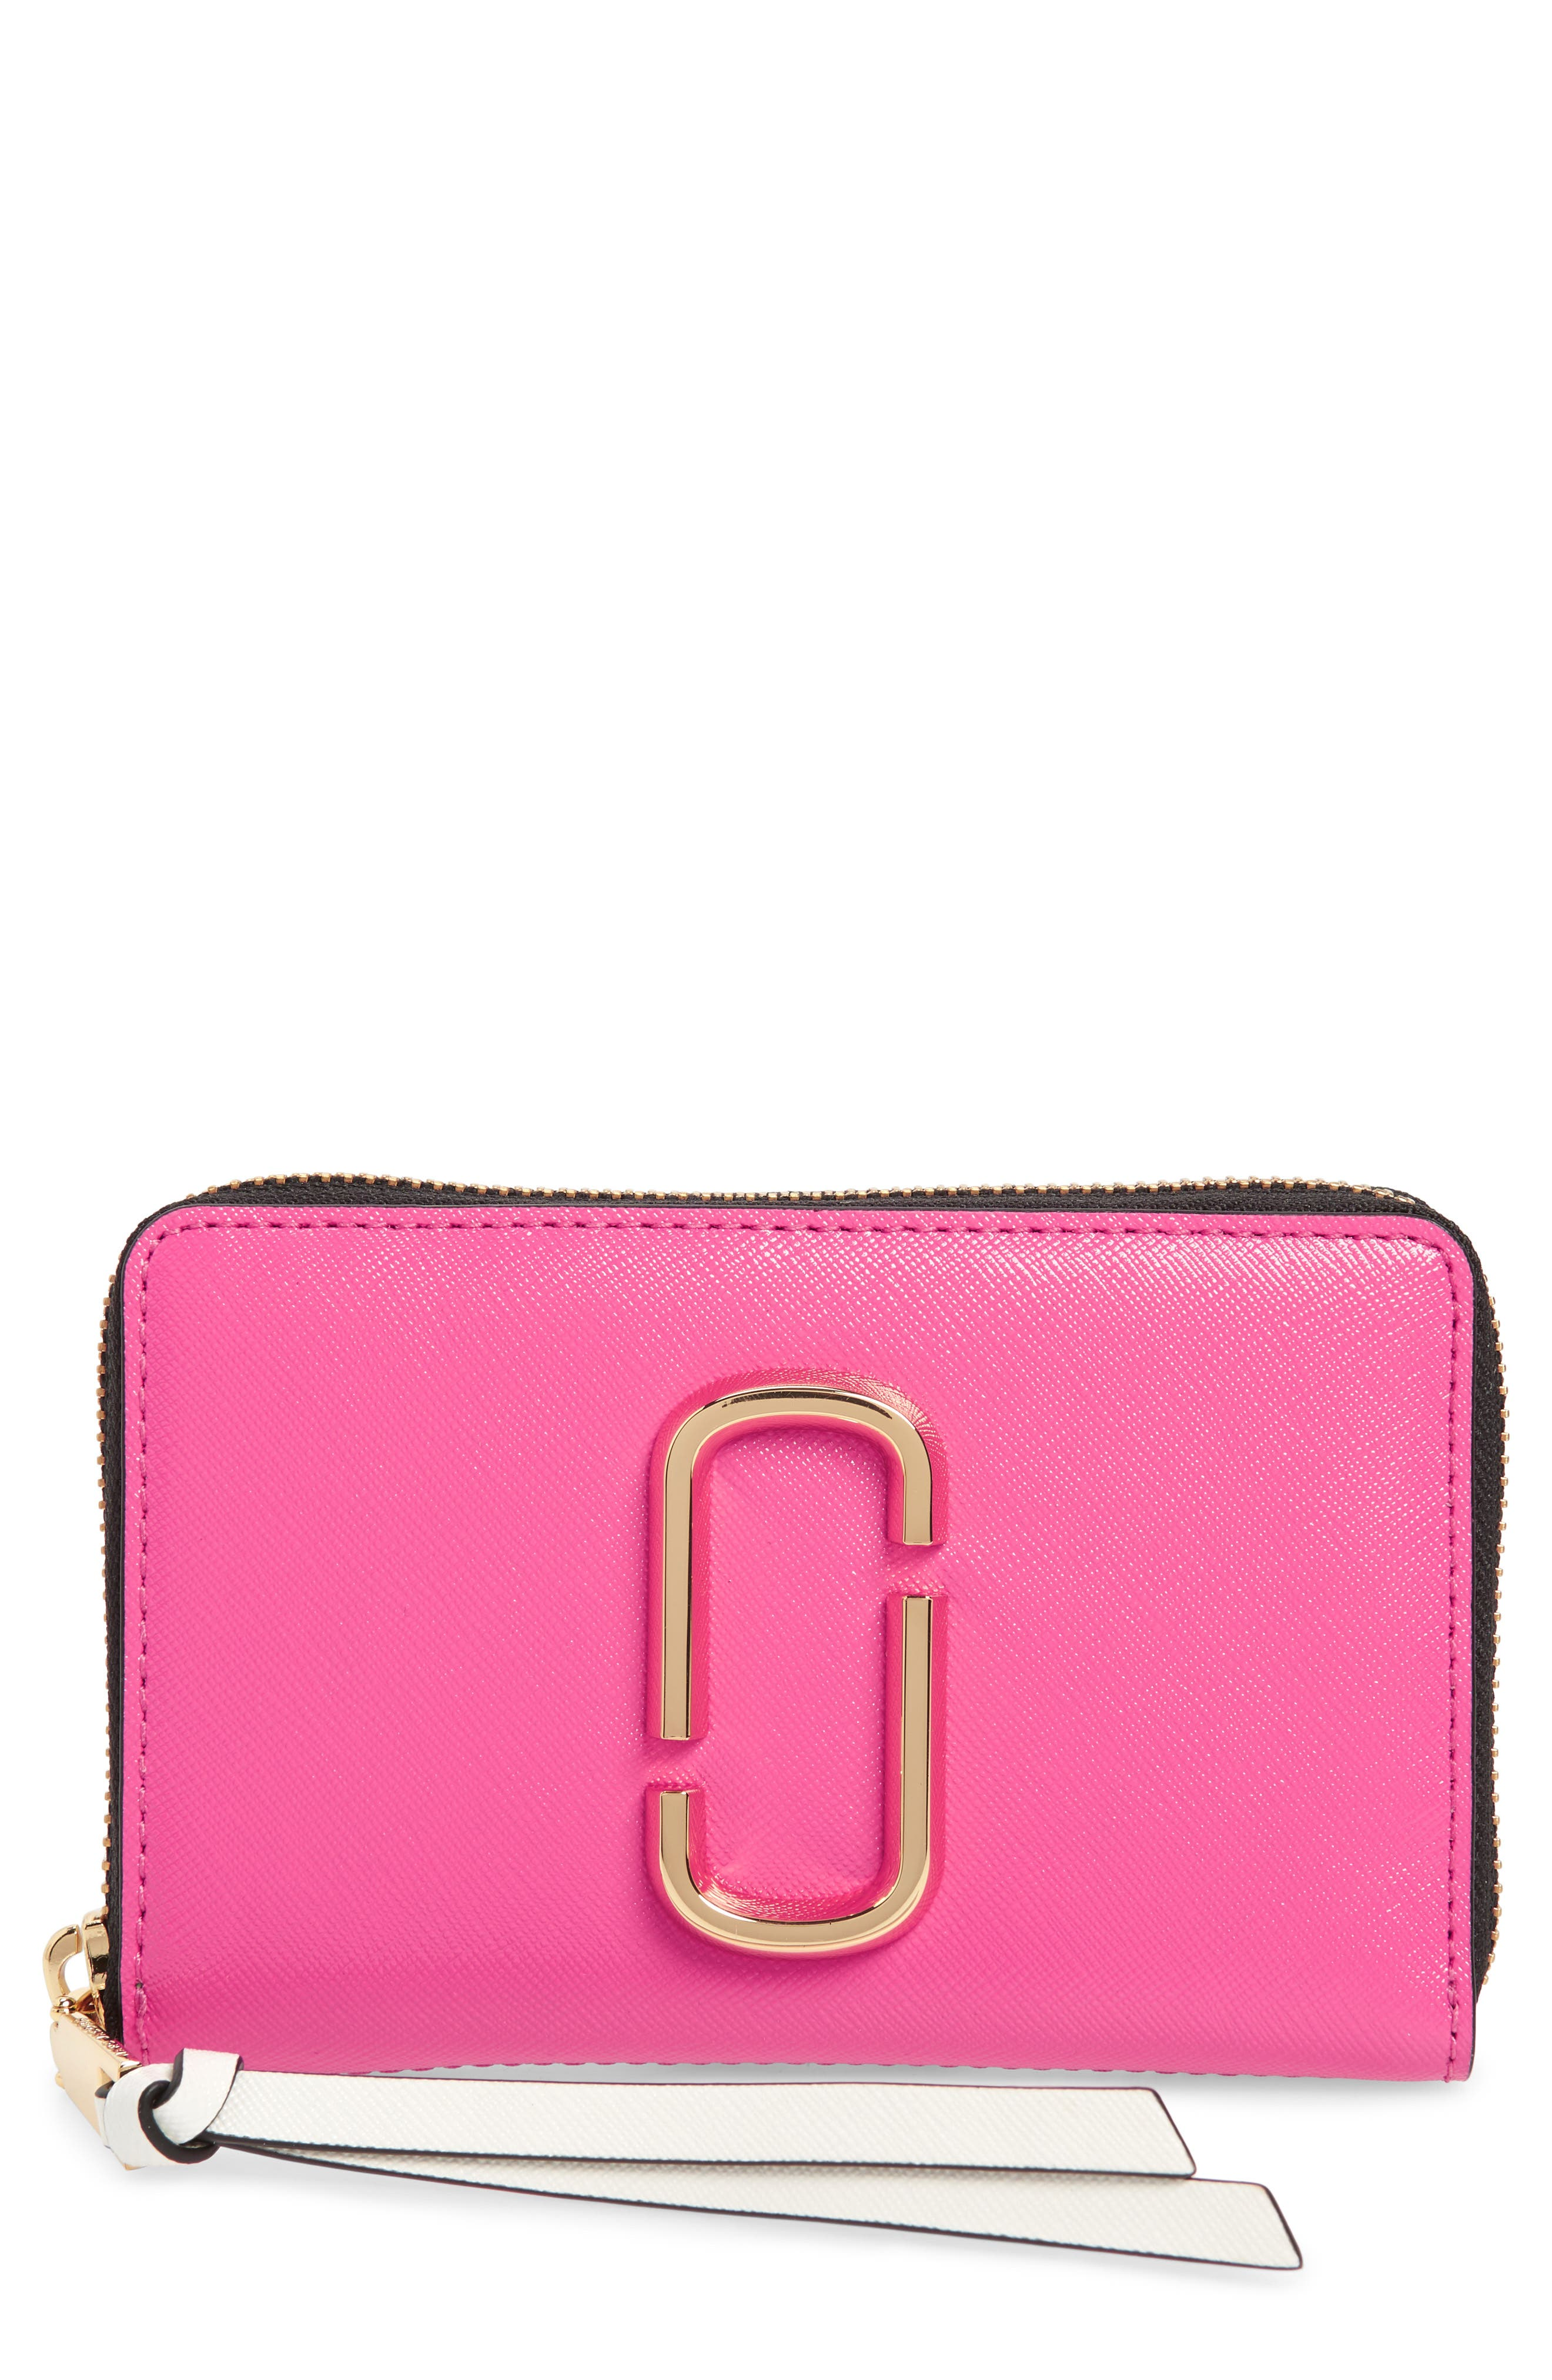 Small Snapshot Leather Zip-Around Wallet,                         Main,                         color, Vivid Pink Multi